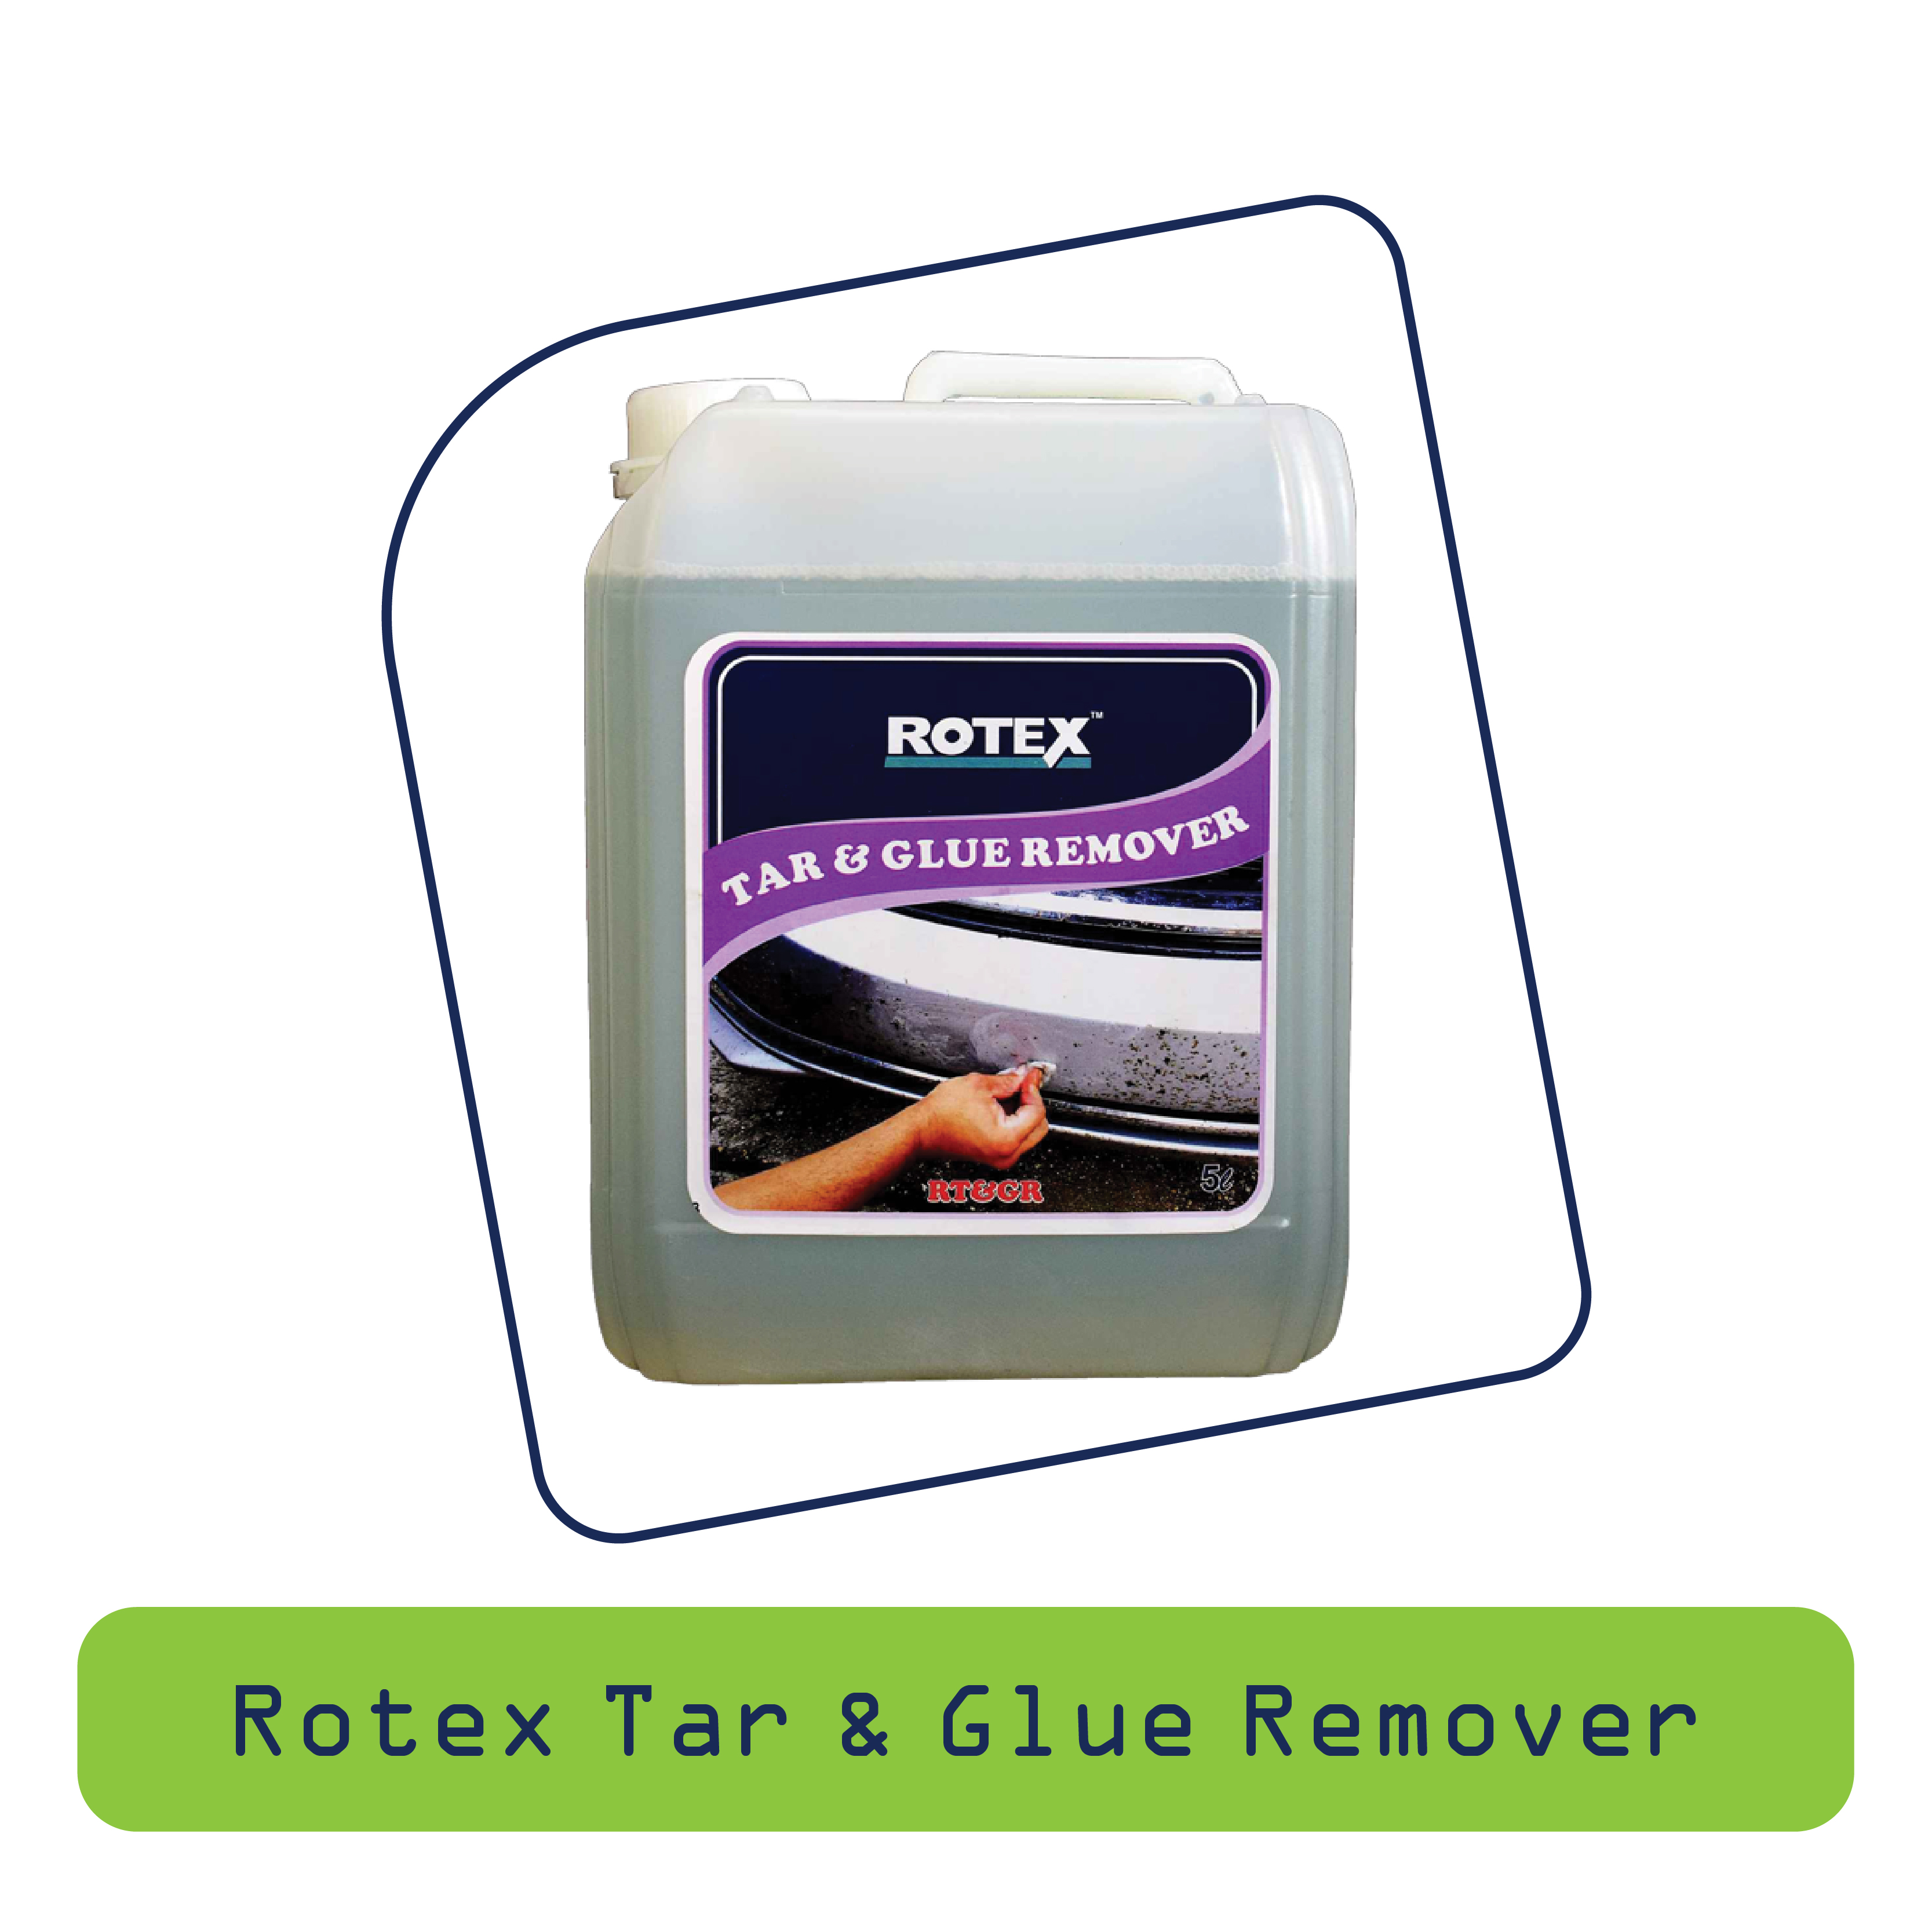 Rotex tar Glue Remover